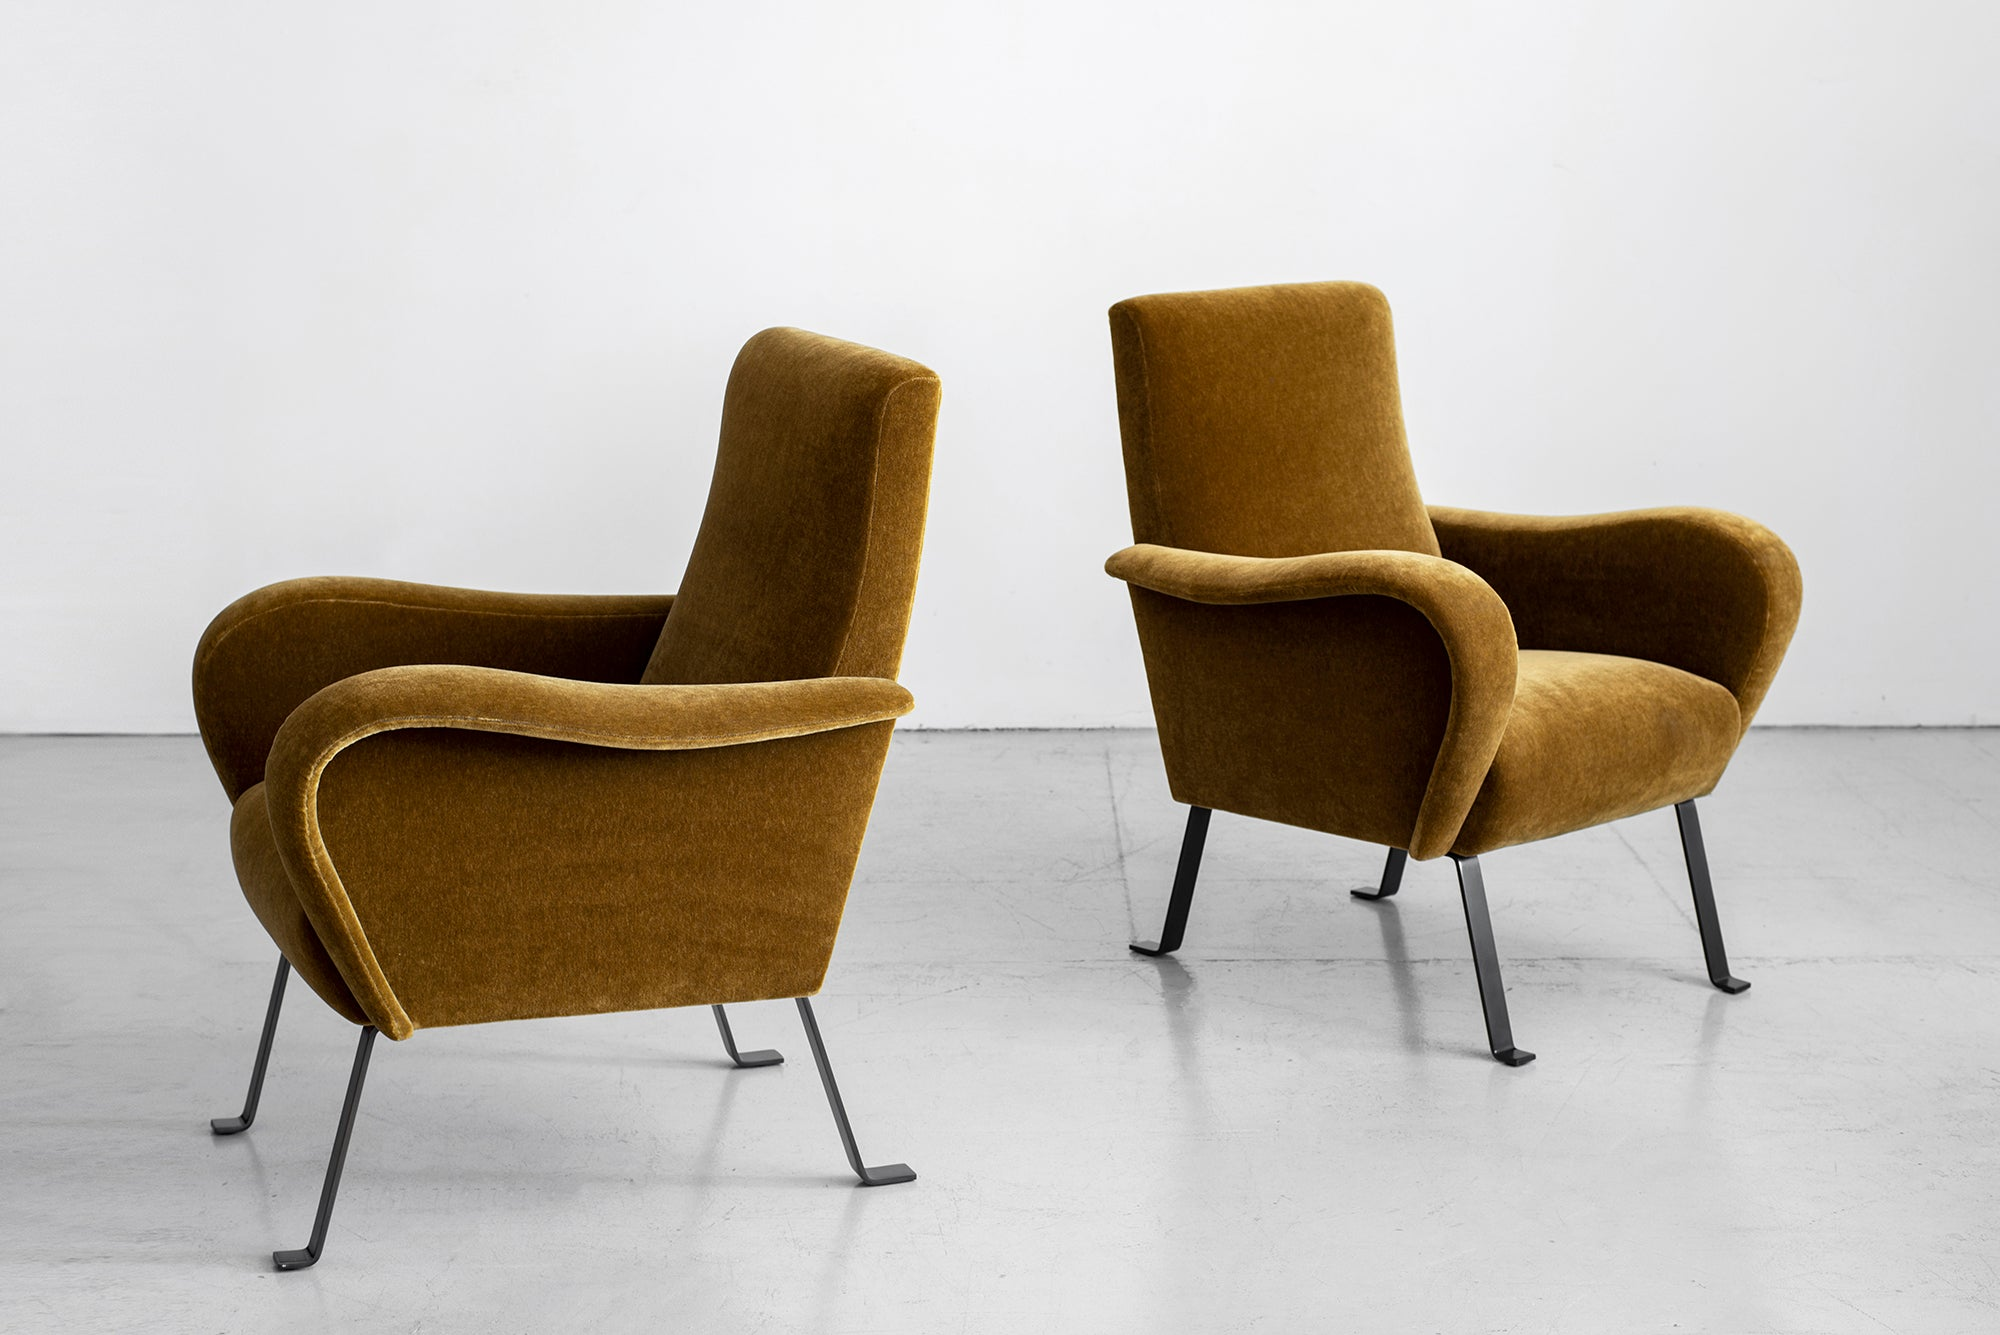 Astounding Italian Mohair Chairs Gmtry Best Dining Table And Chair Ideas Images Gmtryco